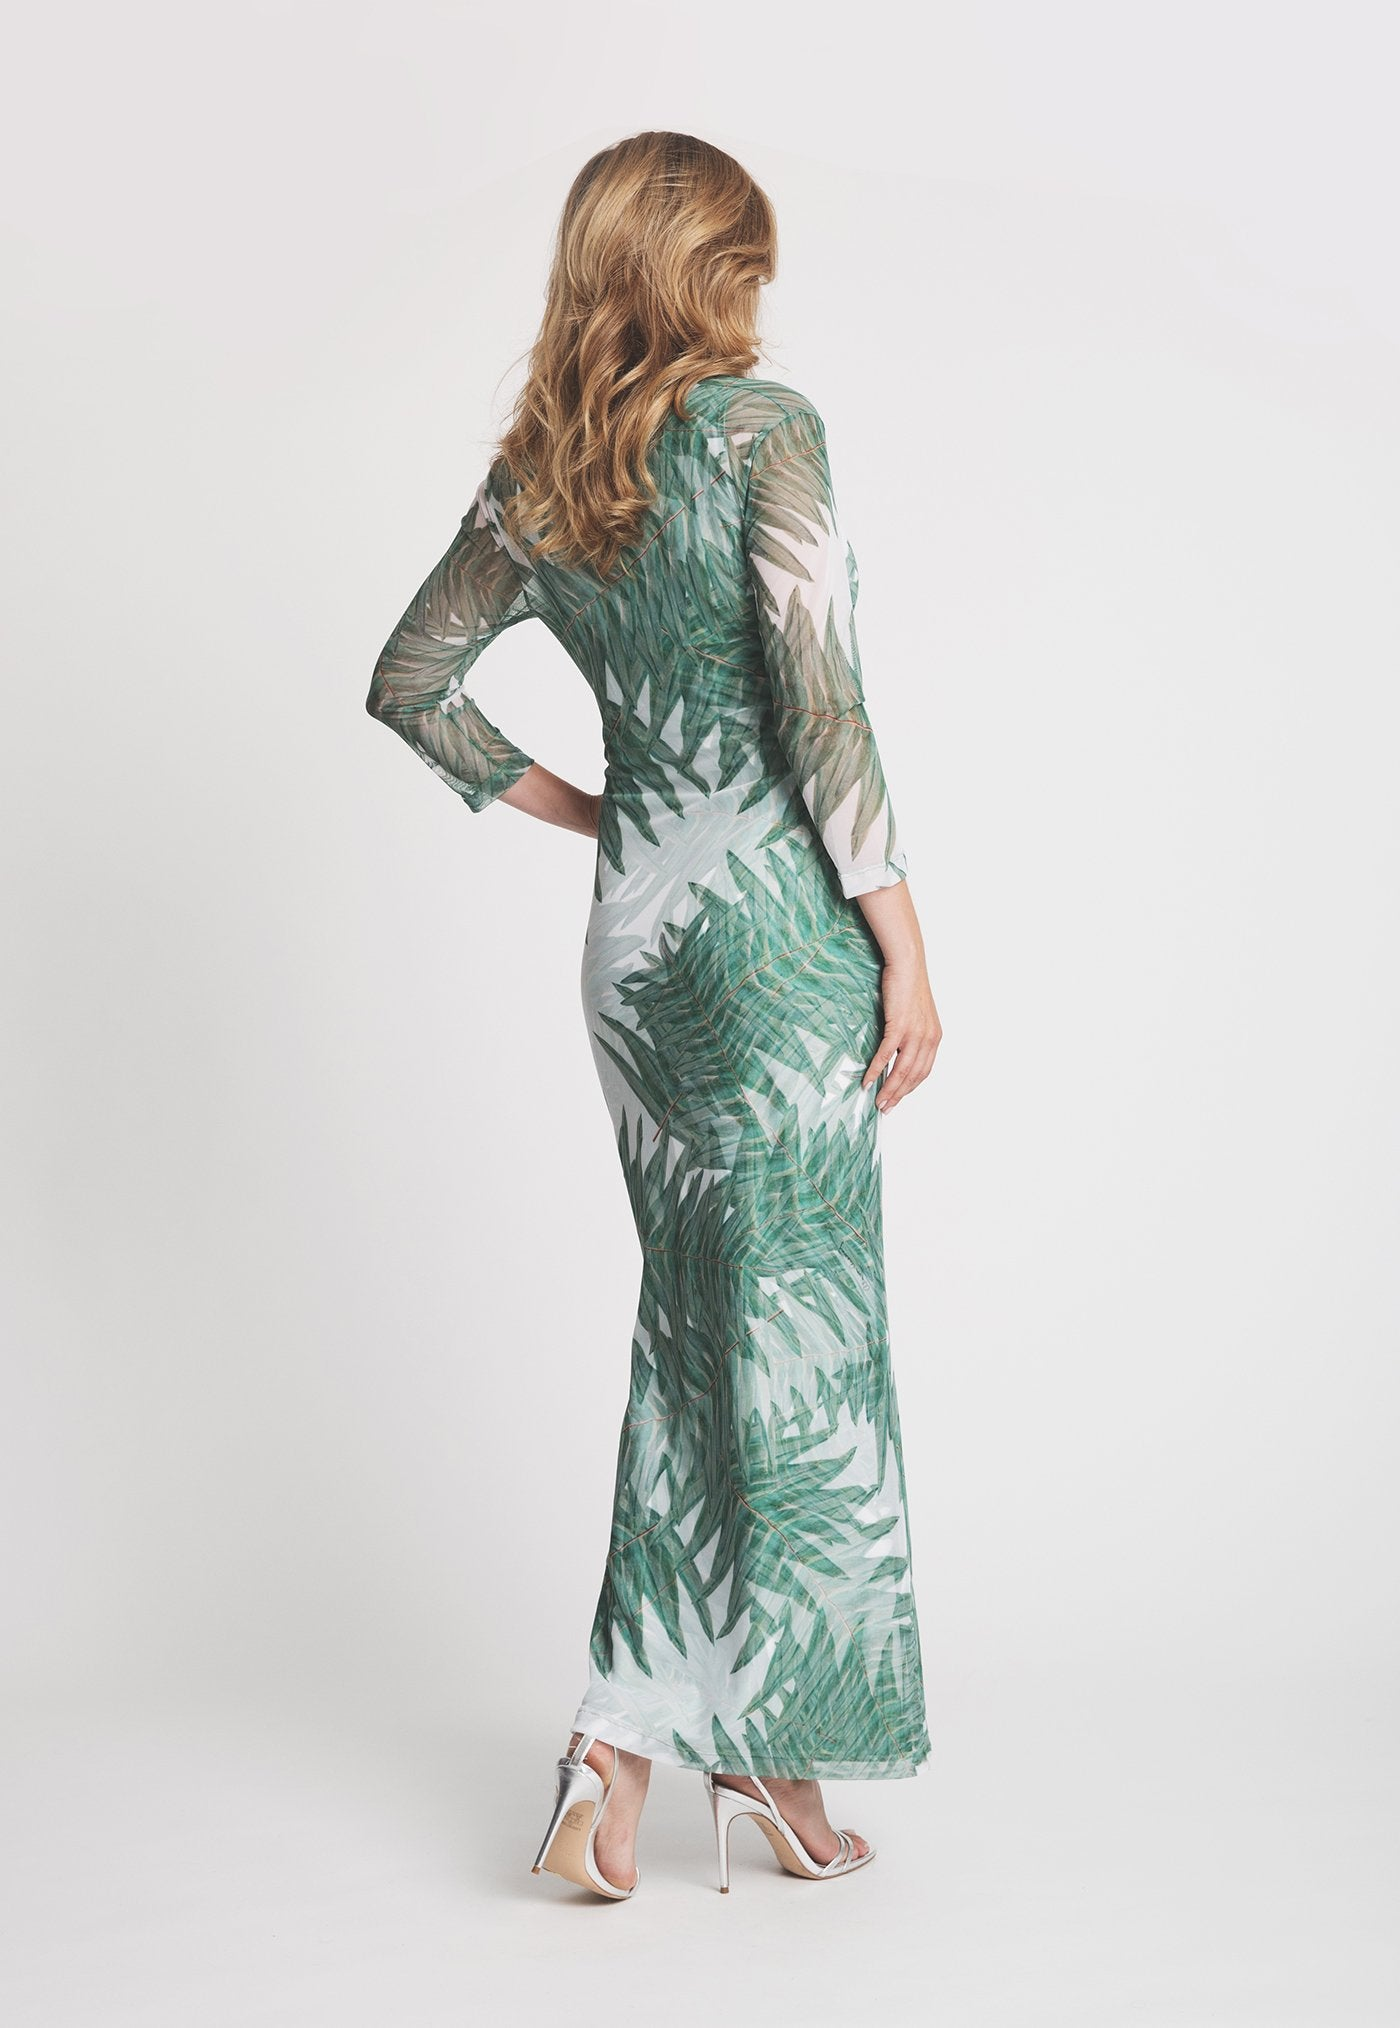 Louise Dress in Queen Palm back view